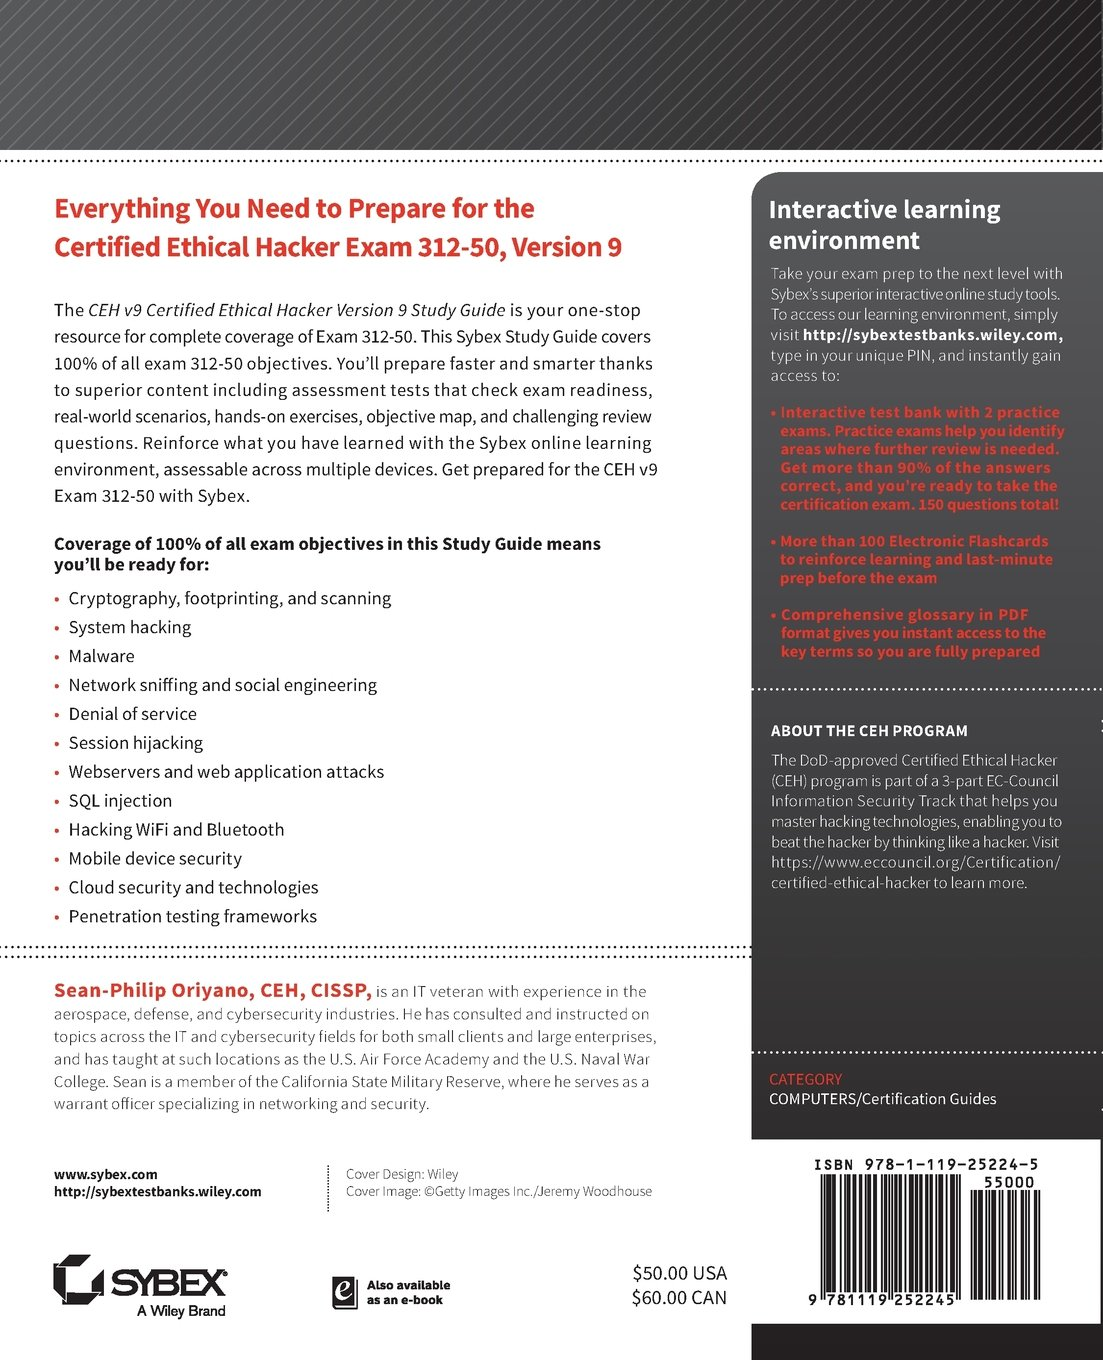 Buy Ceh V9 Certified Ethical Hacker Version 9 Study Guide Book